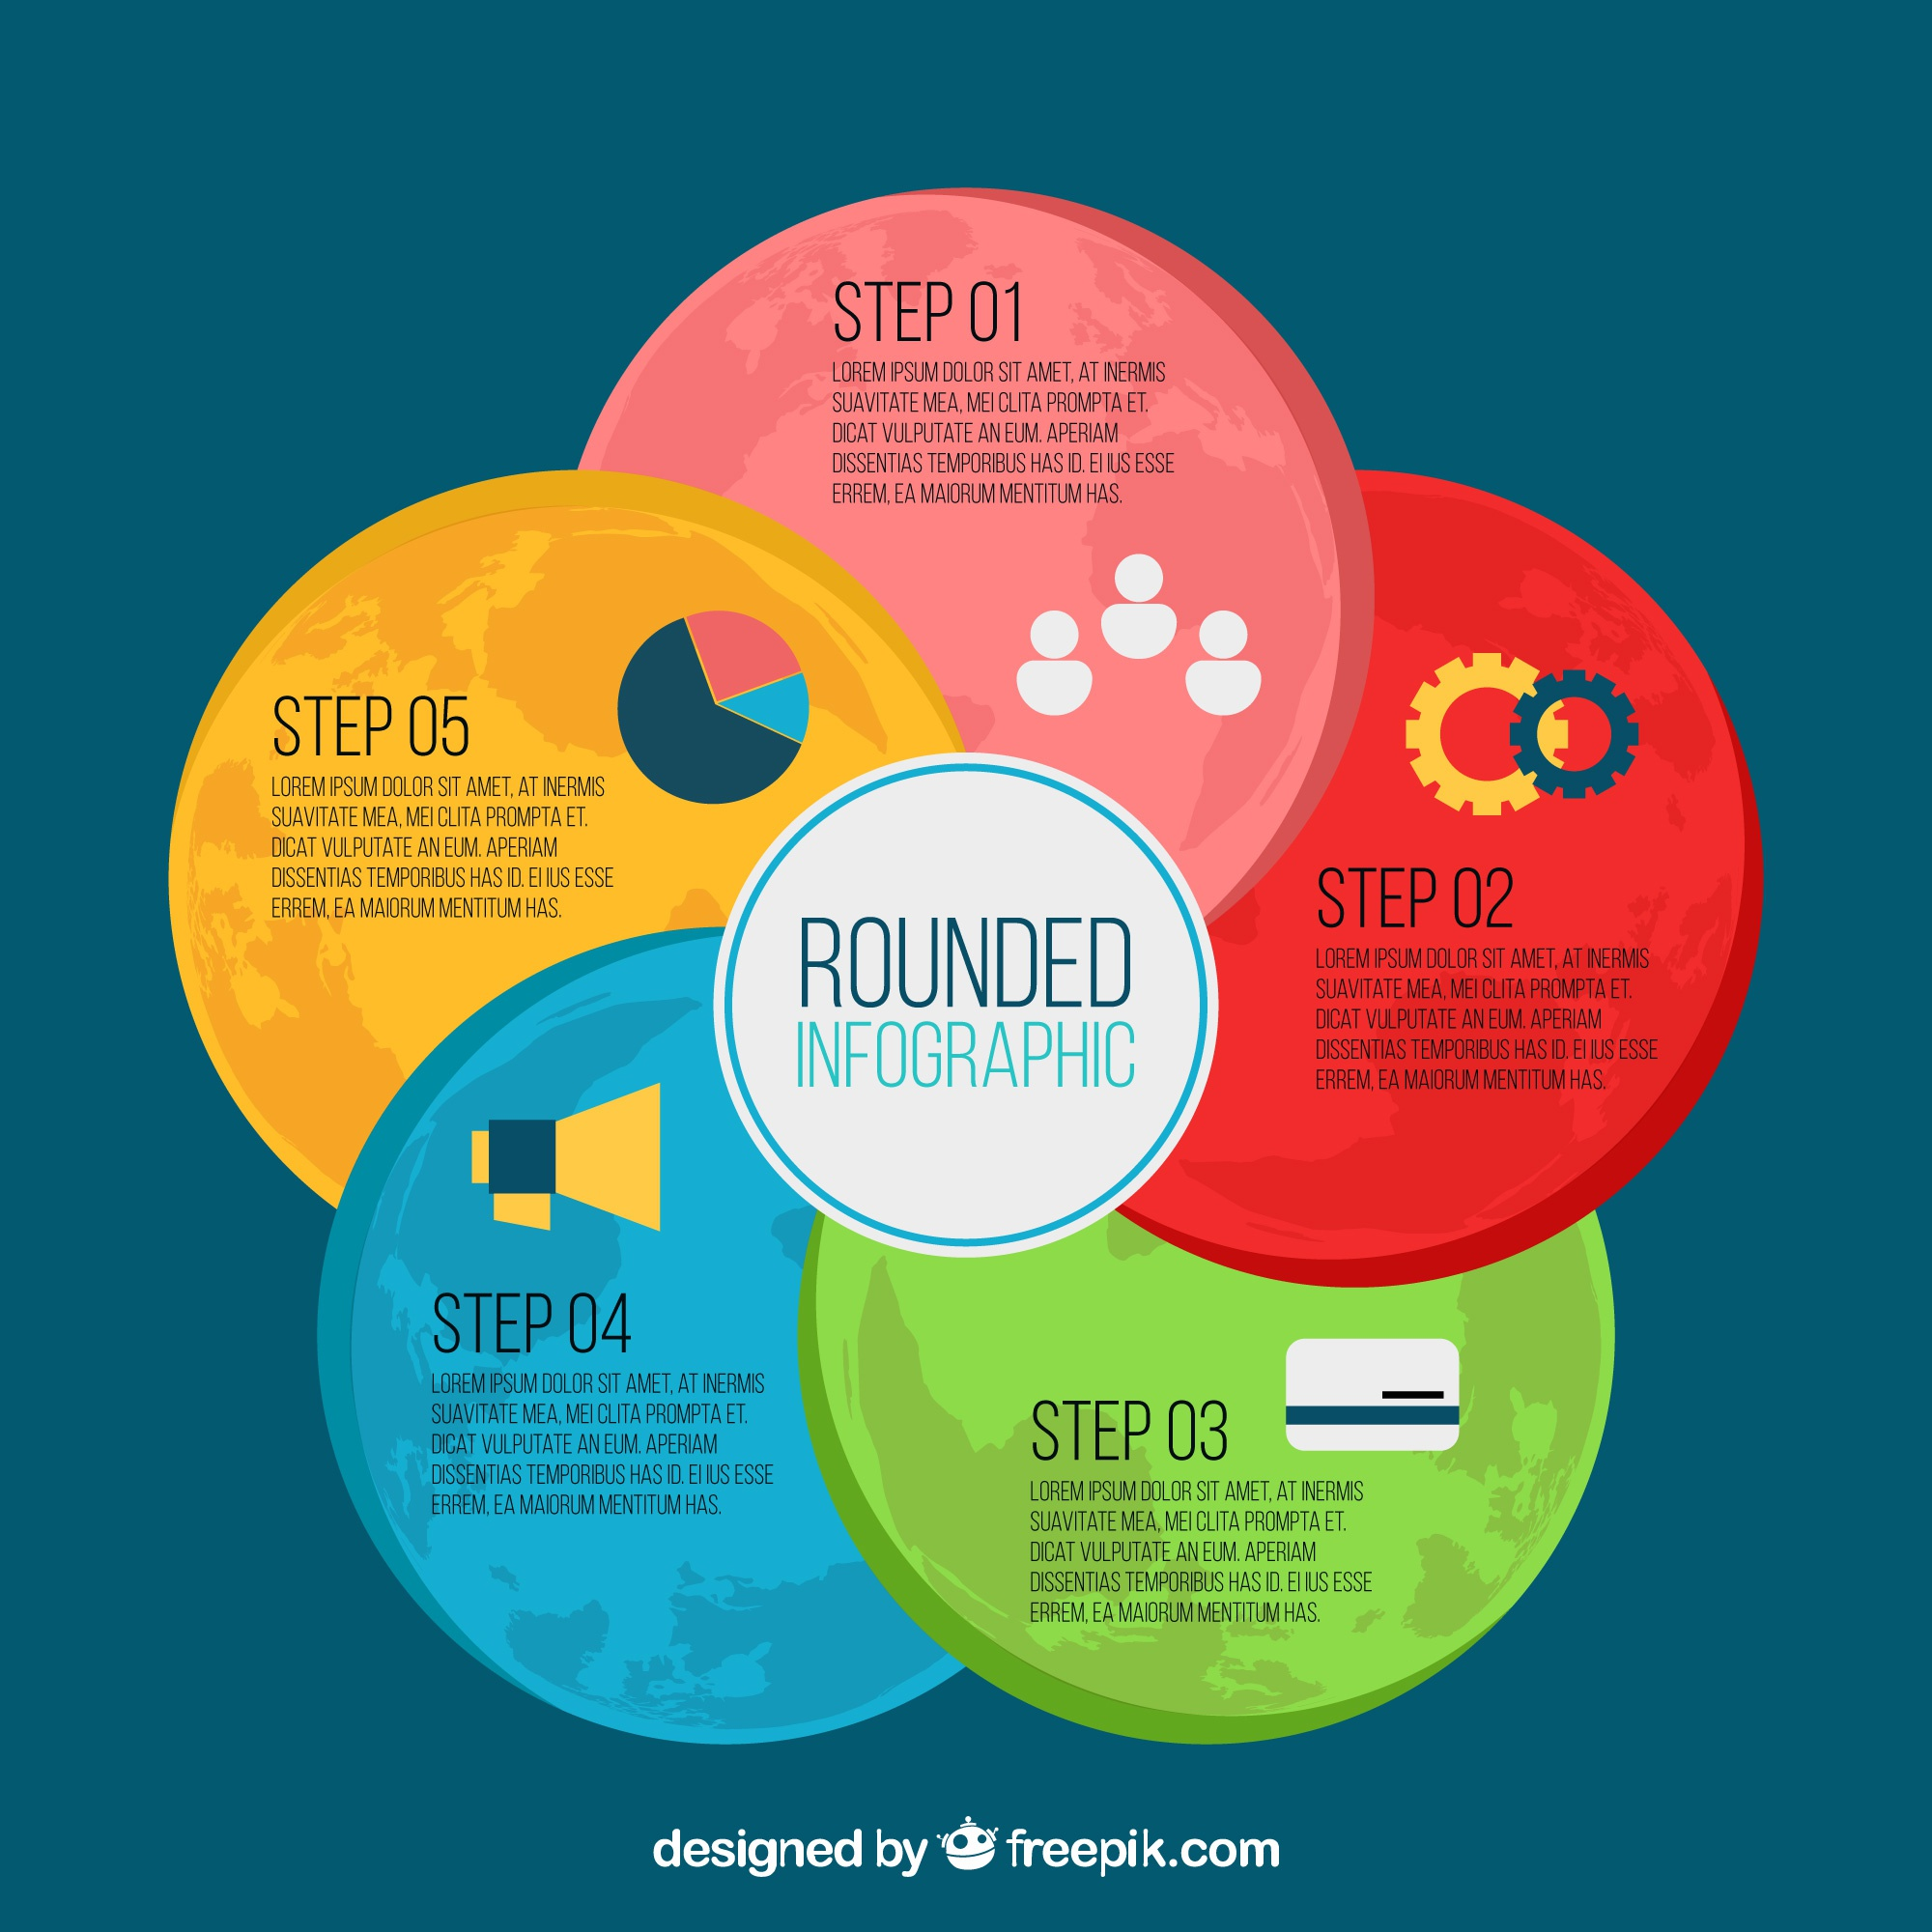 Colored infographic with round shapes